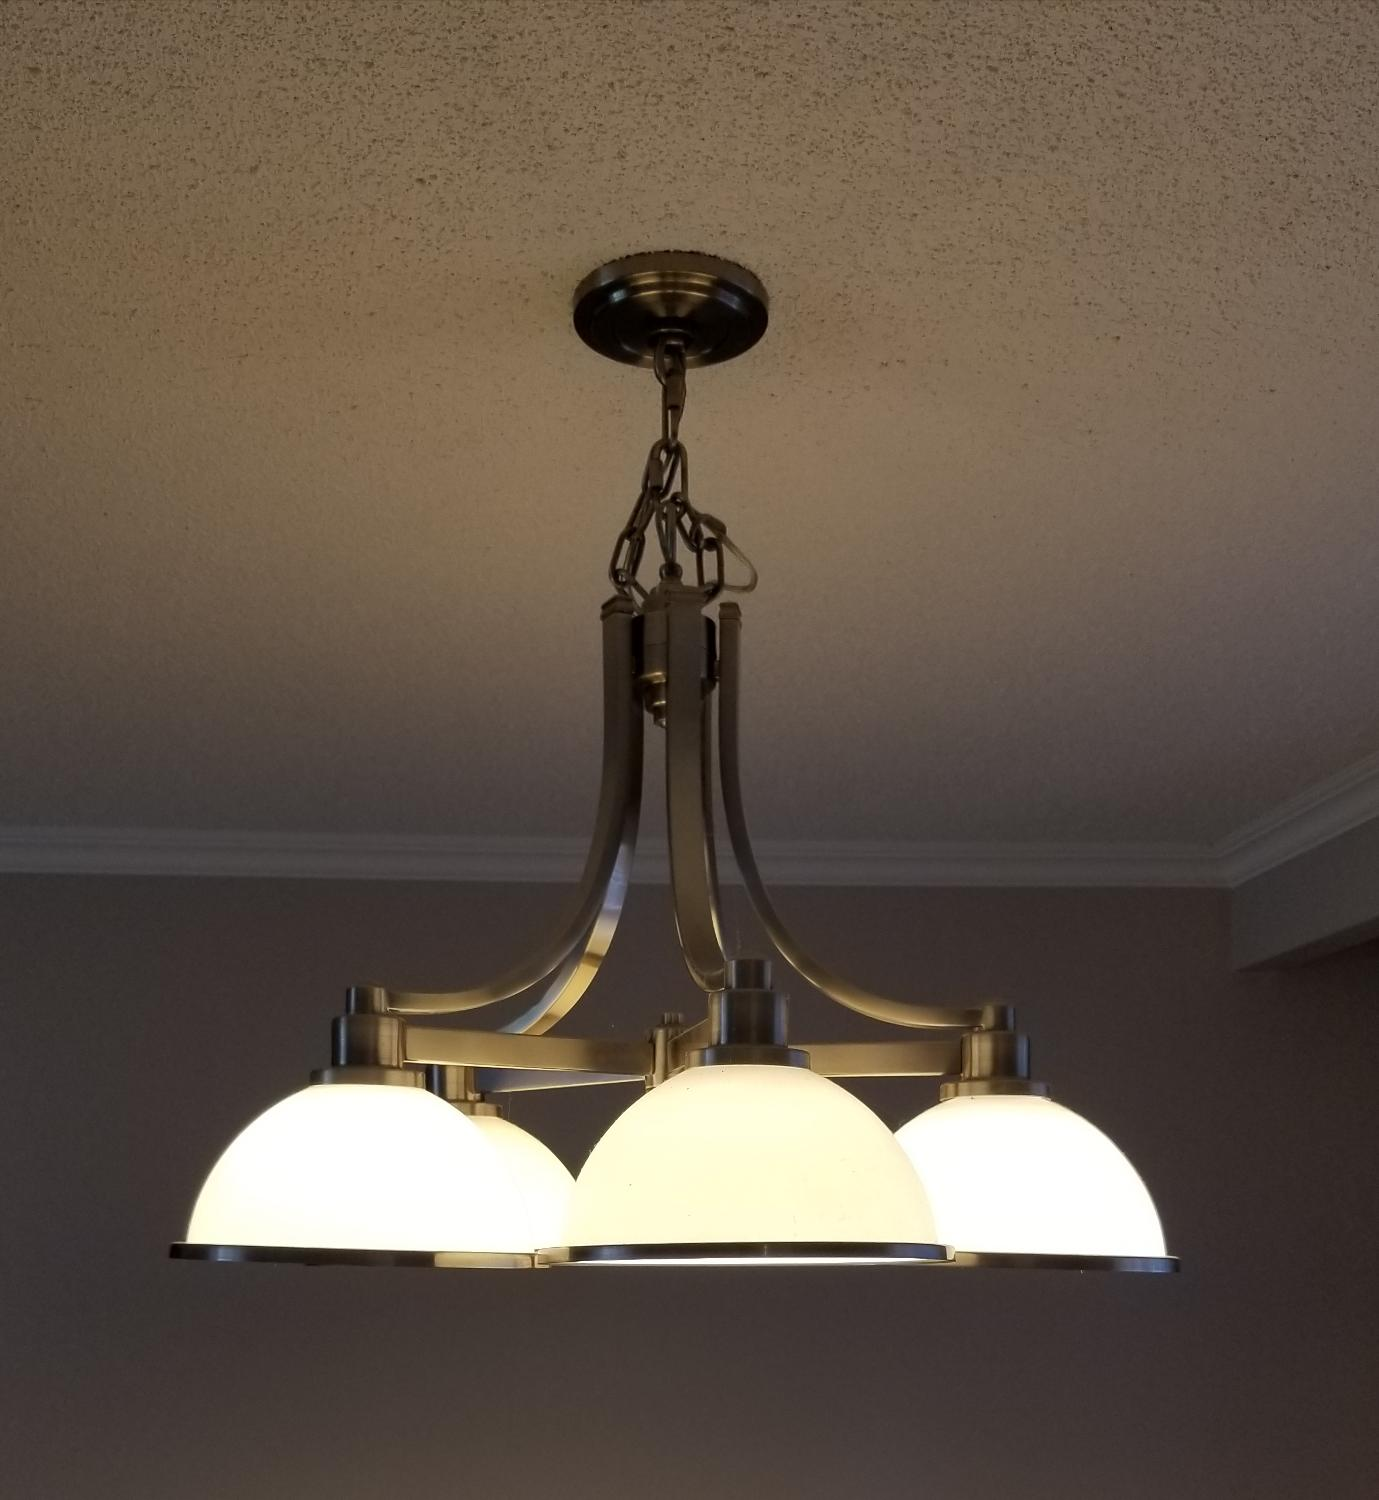 Best hanging light fixture for sale in oshawa ontario for 2019